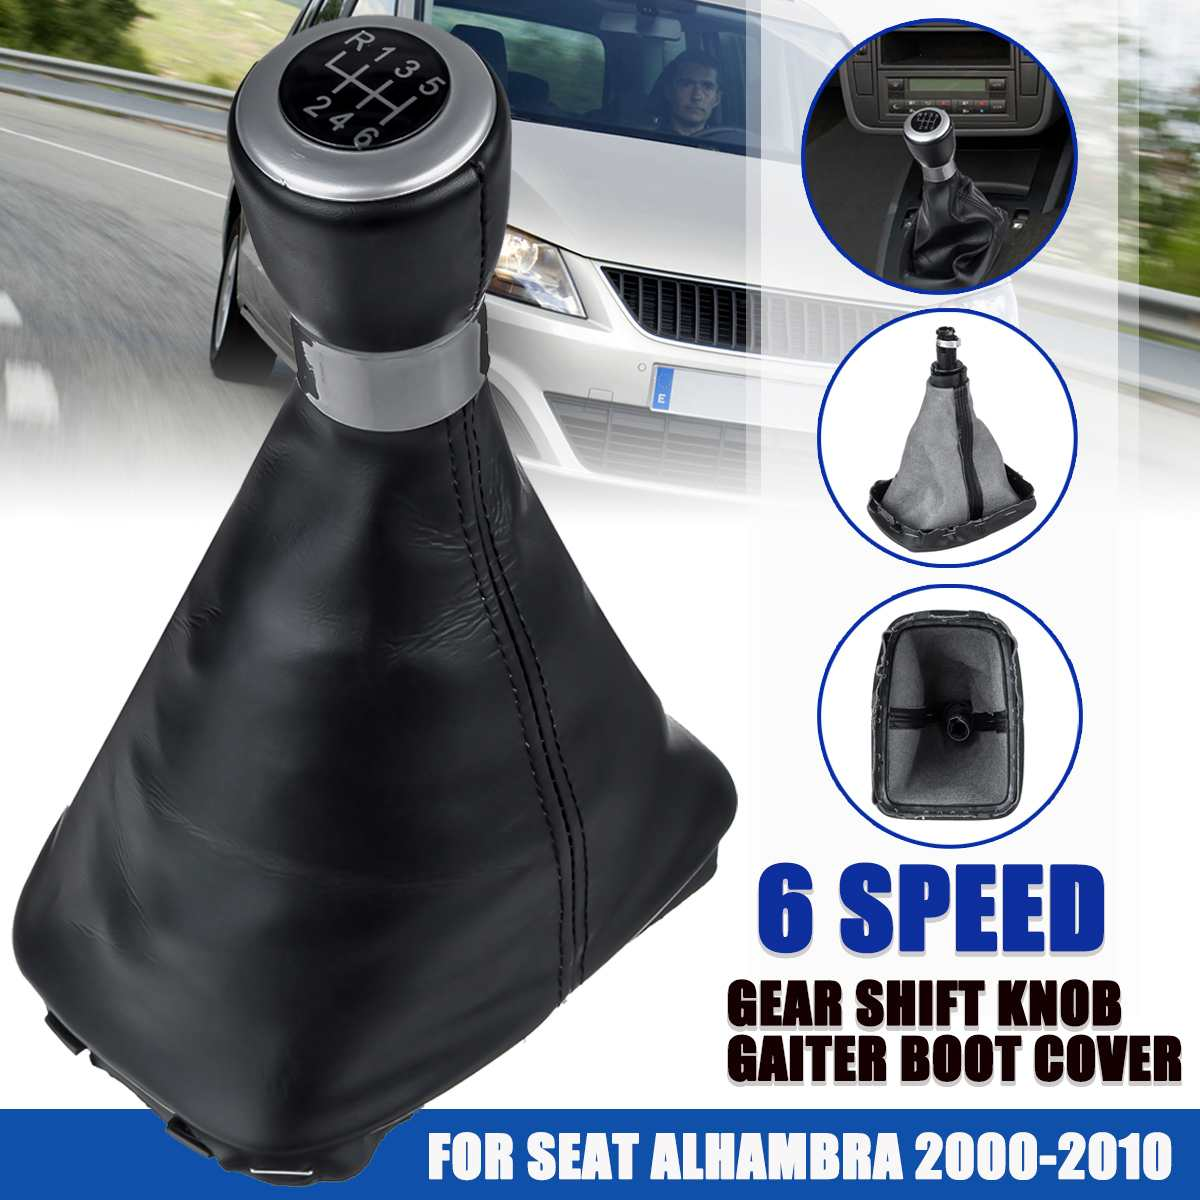 5/6 Speed Manual Gear Shift Knob Gaiter Boot Cover Lever Shifter Stick Shift Collar For Seat/Alhambra 2000-2010